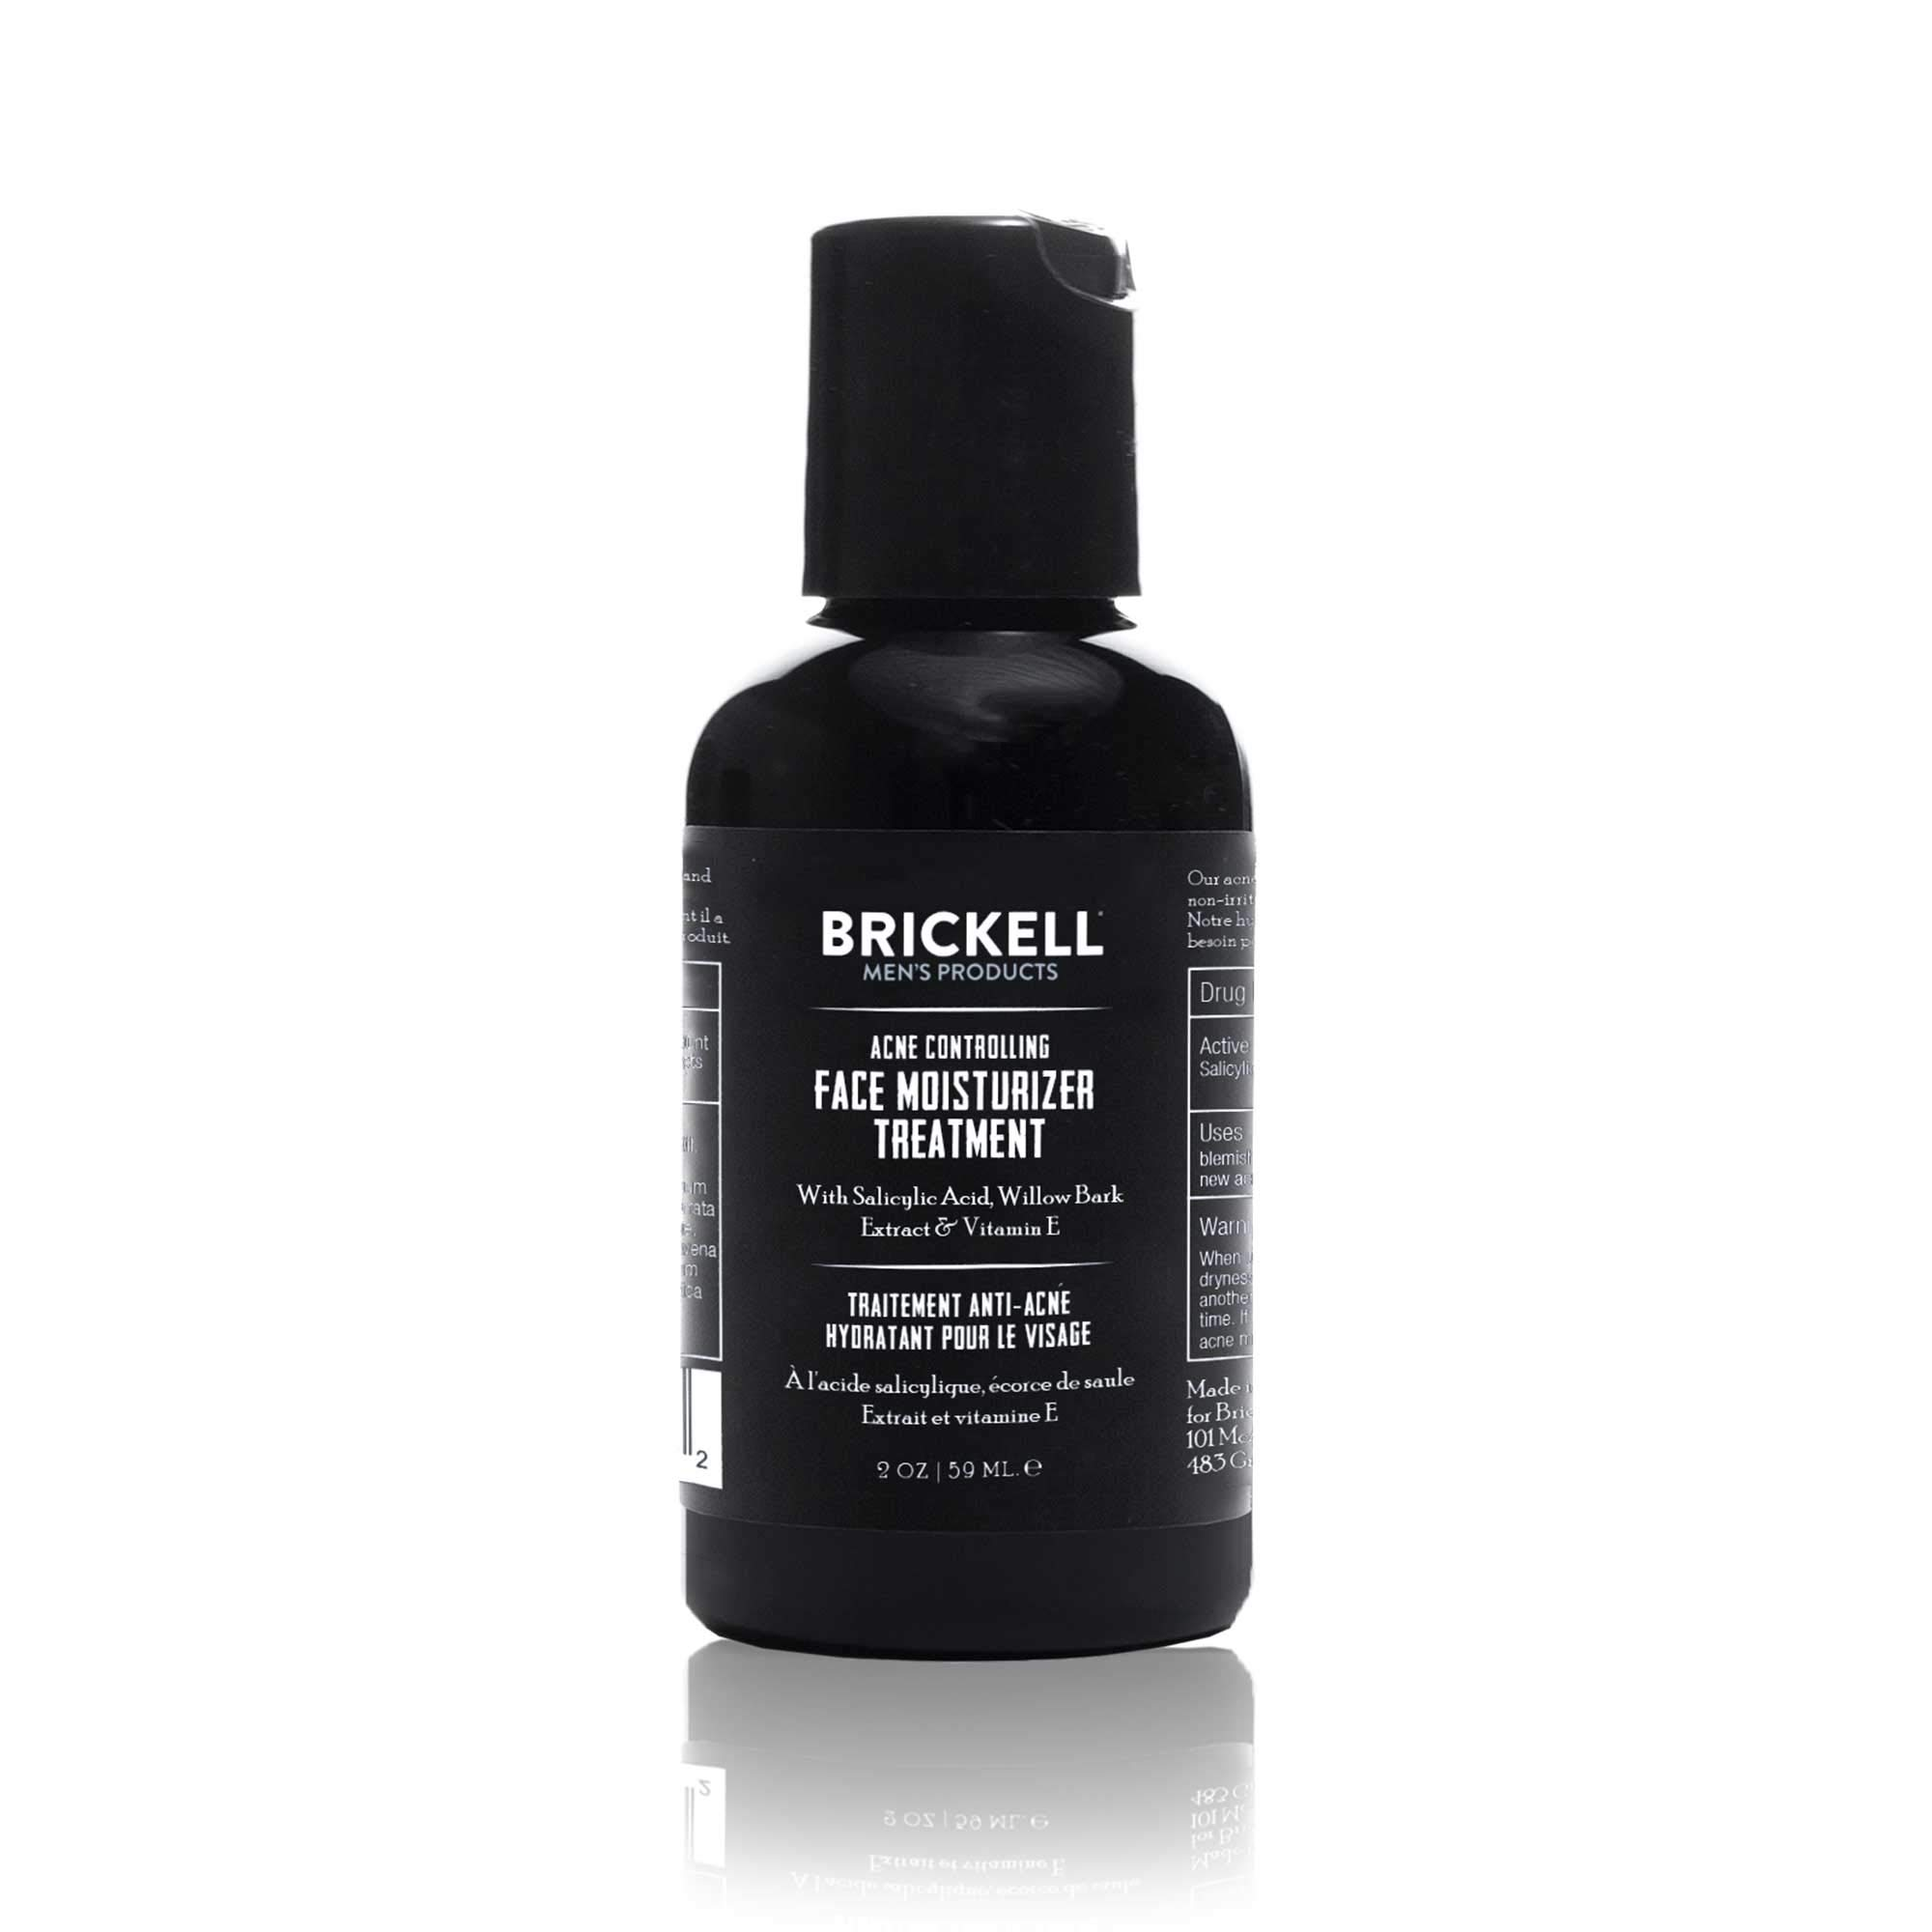 Brickell Men's Acne Controlling Face Moisturizer Treatment for Men, Natural and Organic Acne Face Moisturizer Treatment to Clear Acne, Even Skin Tone and Moisturize Skin, 2% Salicylic Acid, 2 Ounces